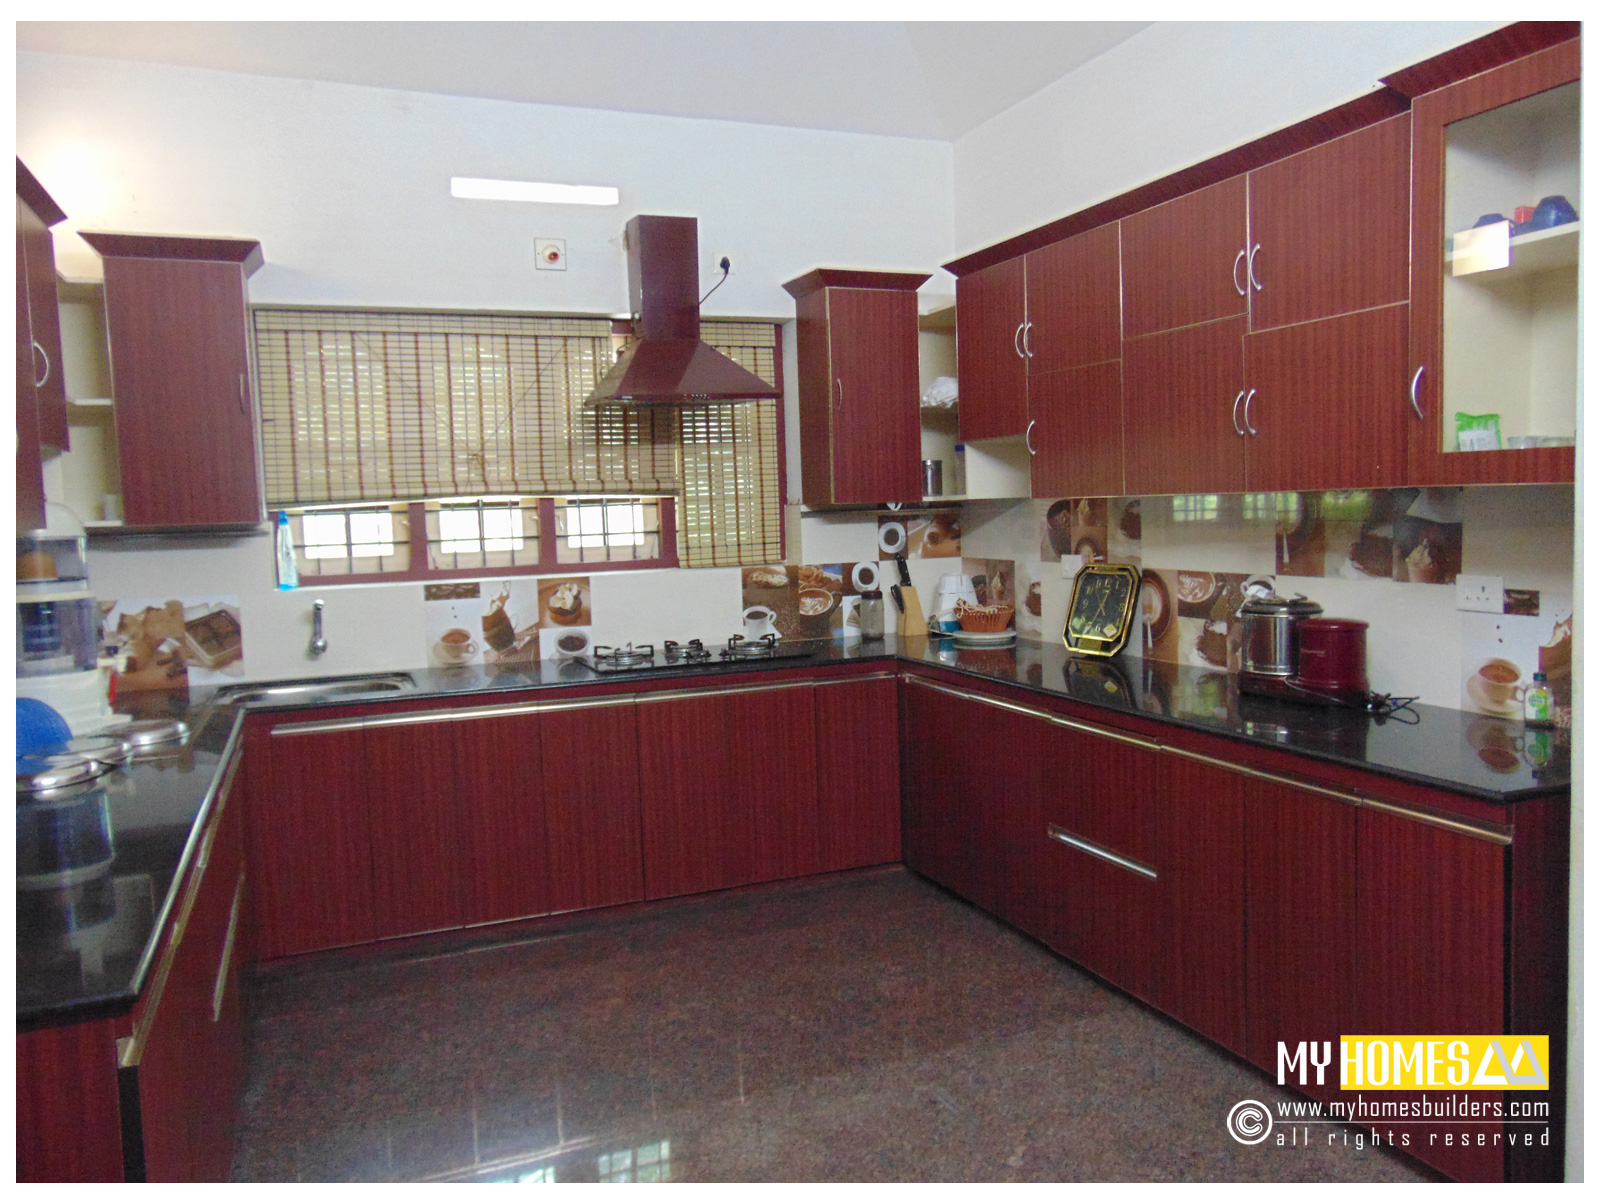 New kitchen designs in kerala home photos by design for New home kitchen designs